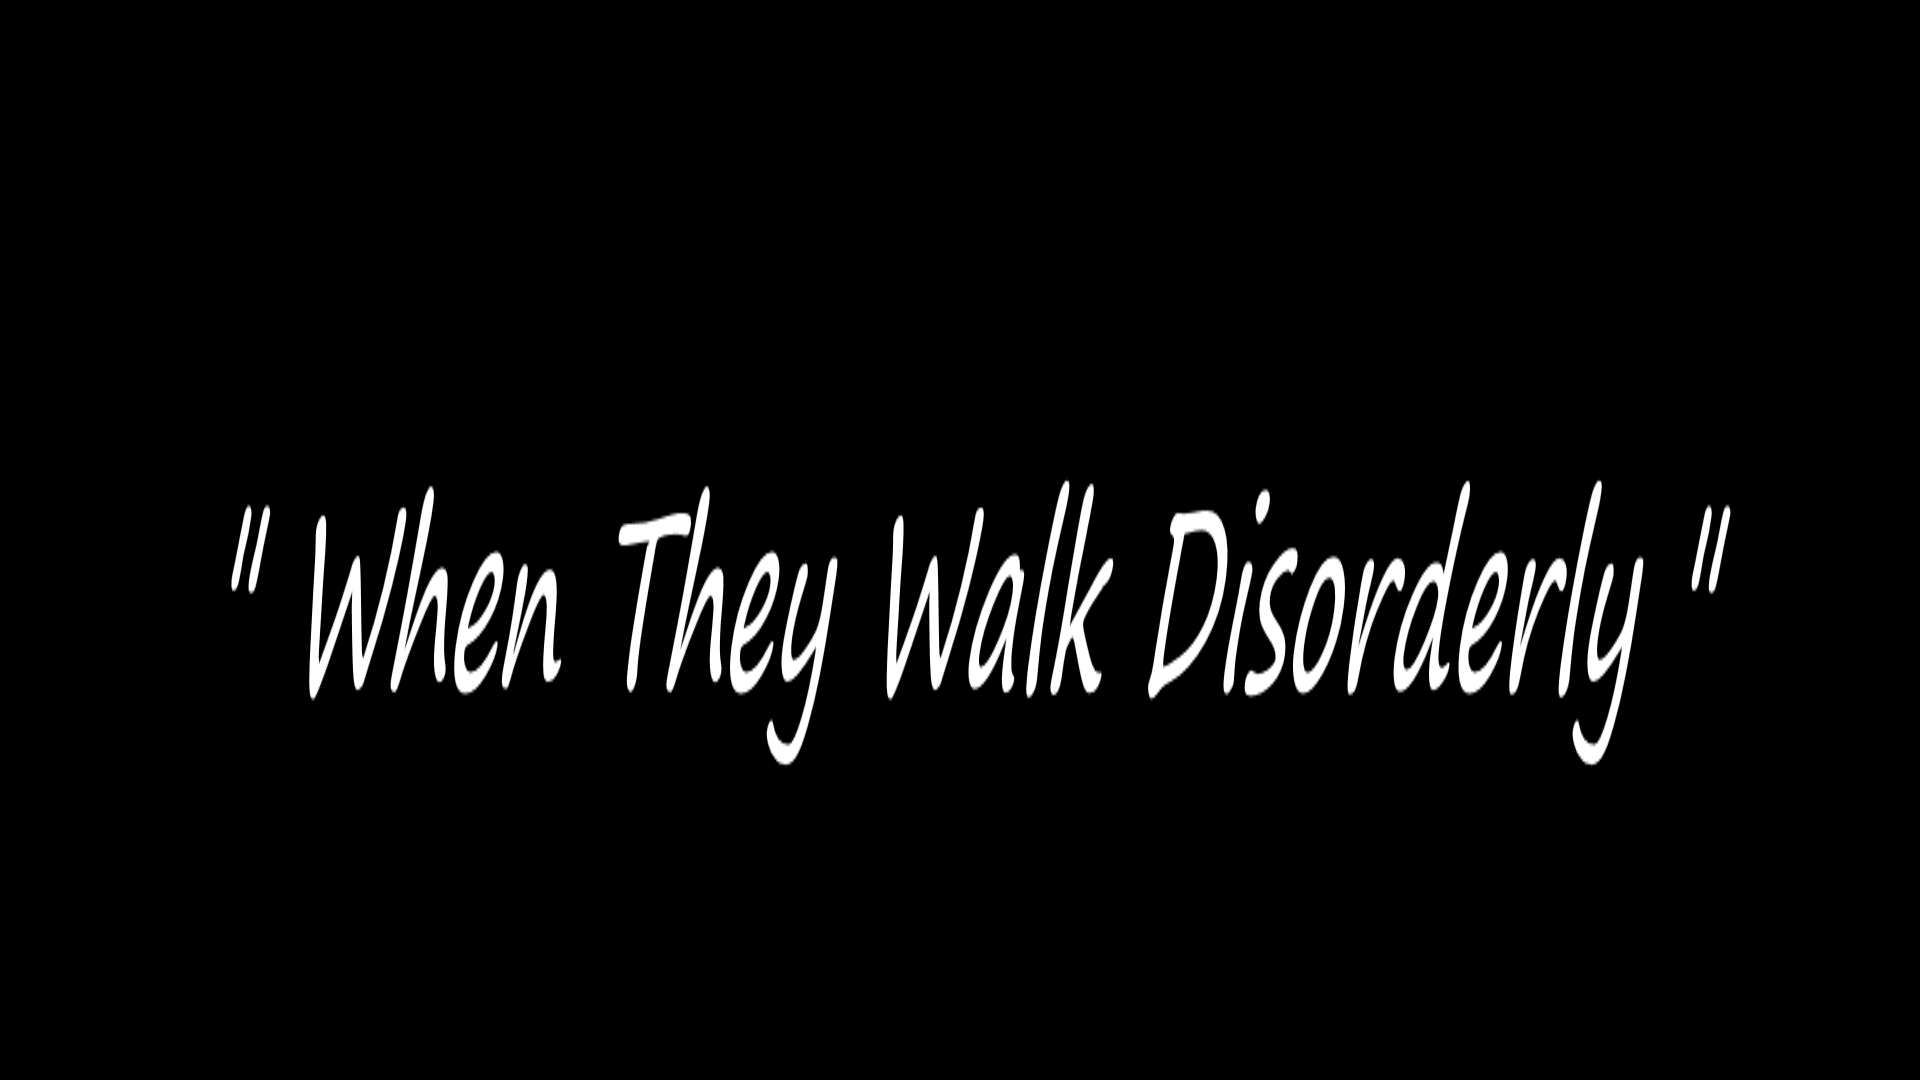 When They Walk Disorderly